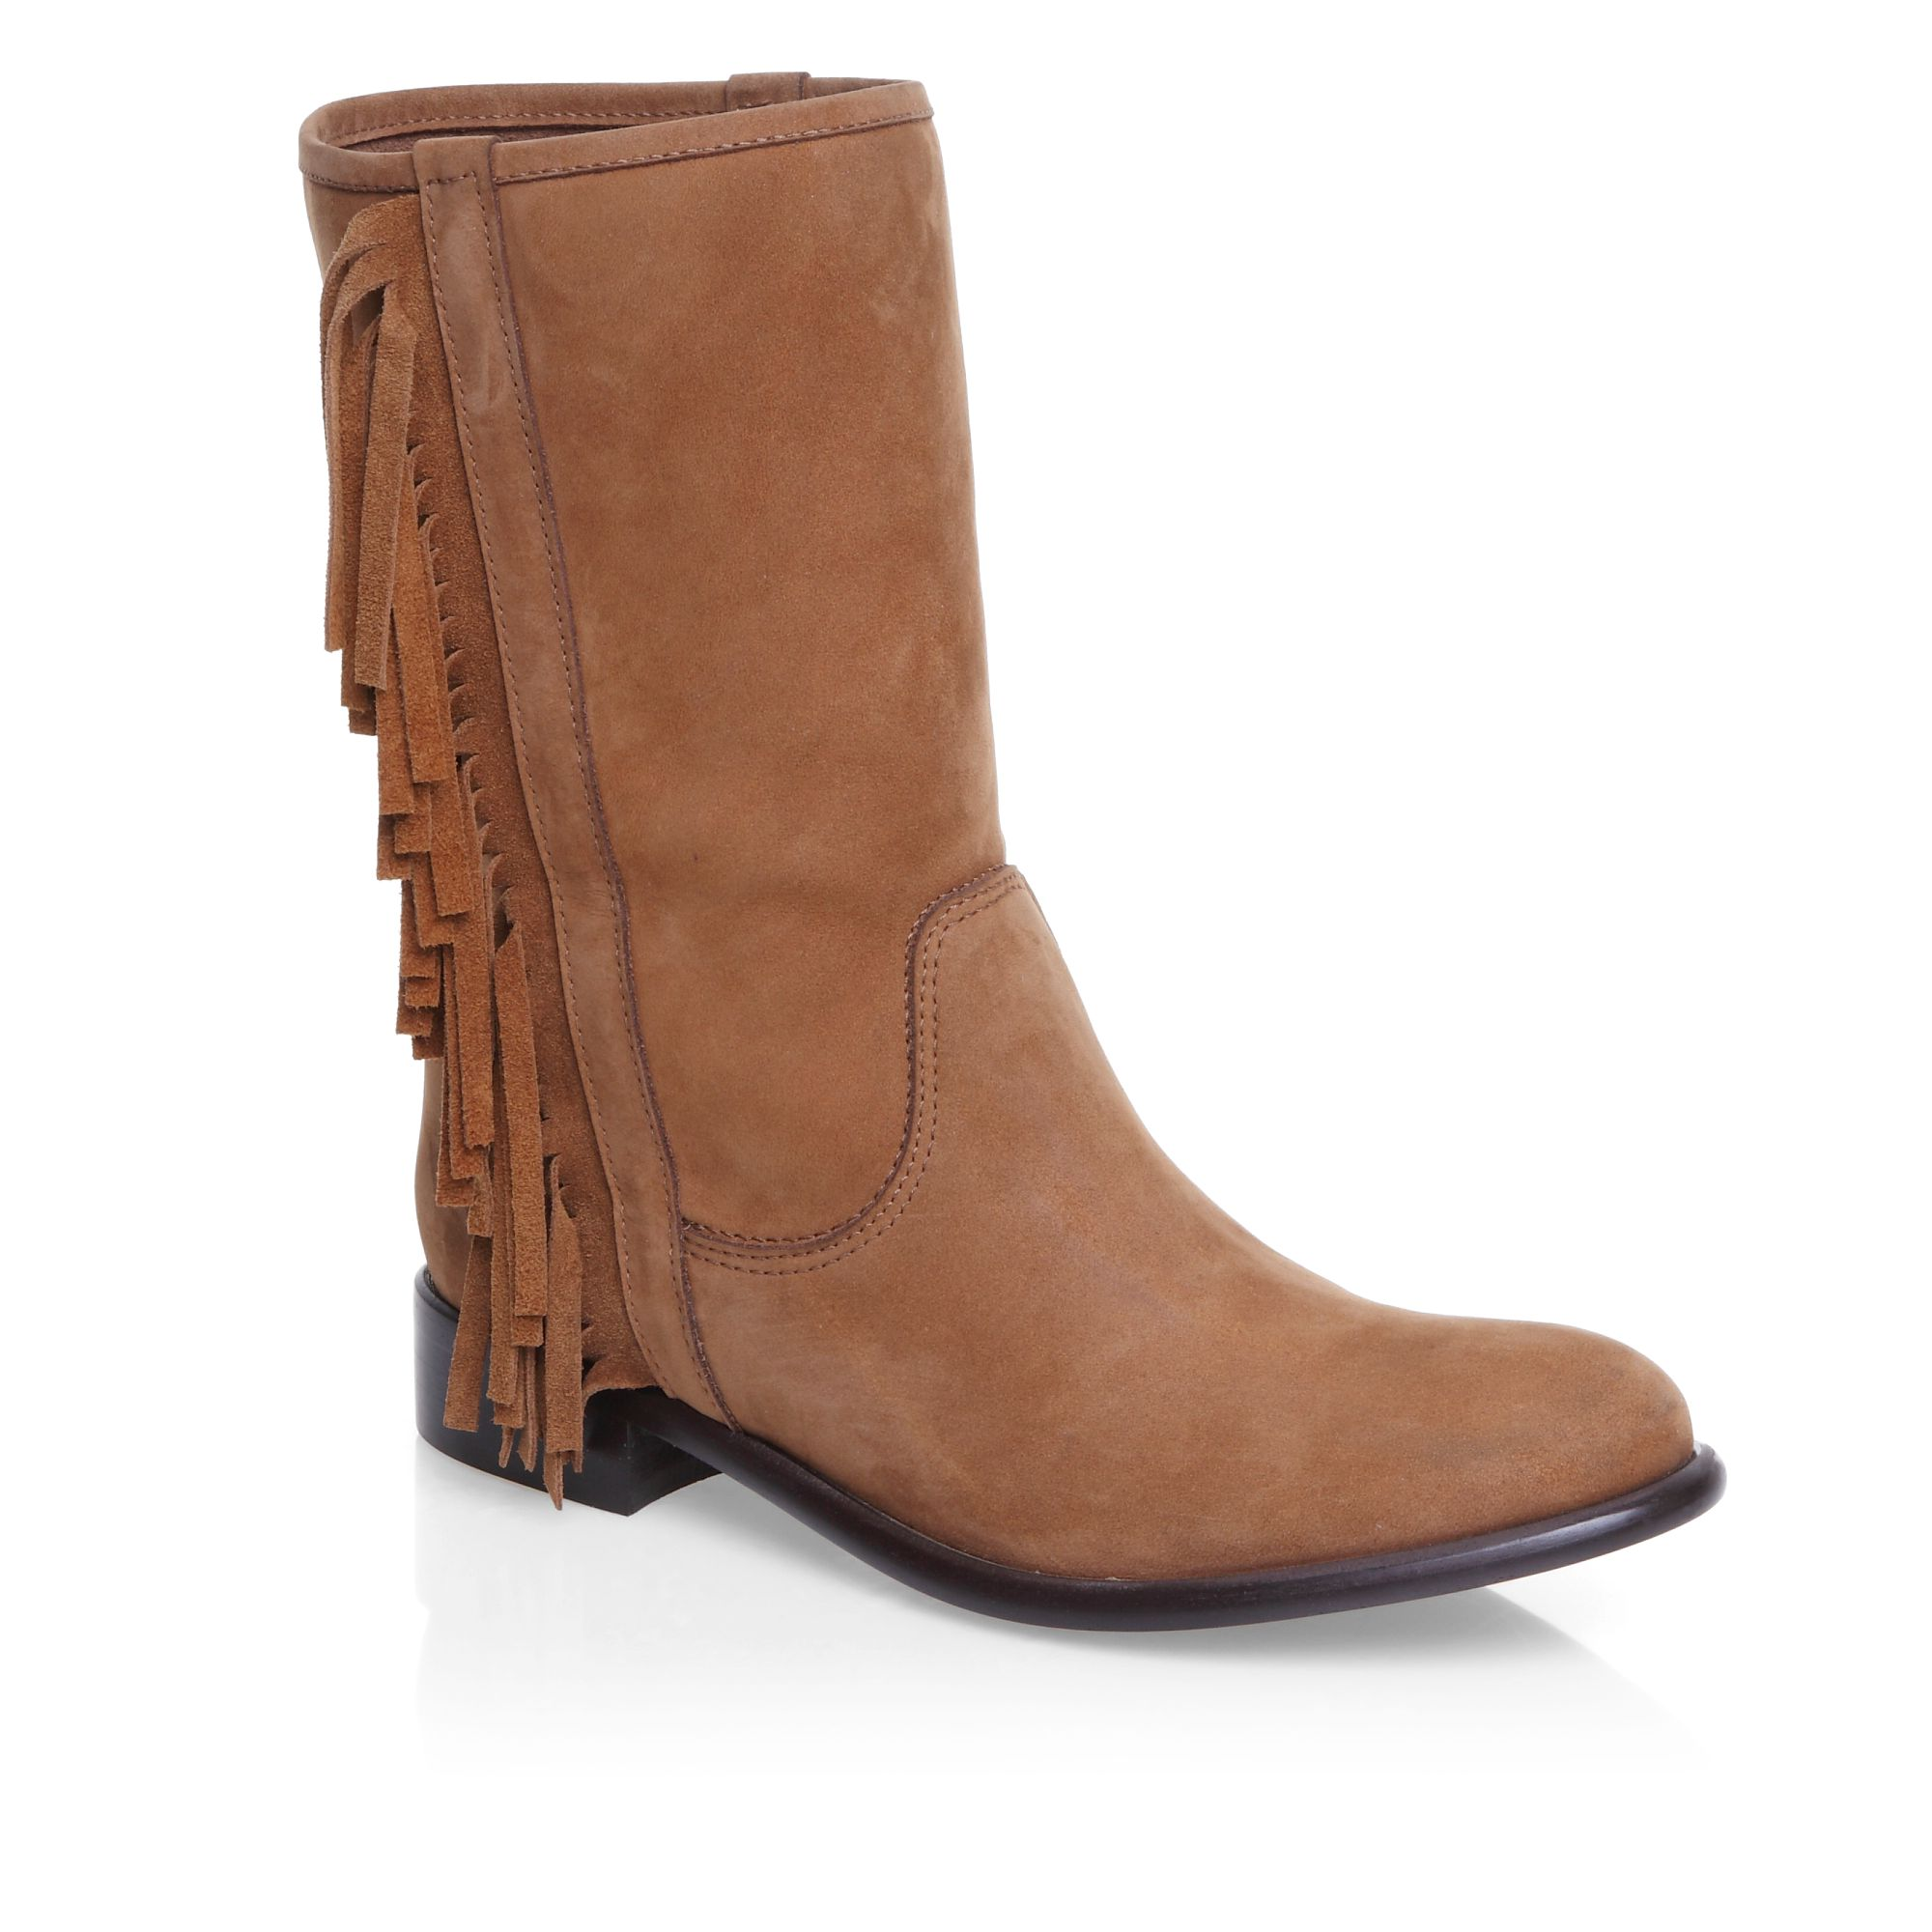 Tassle detailed ankle boots